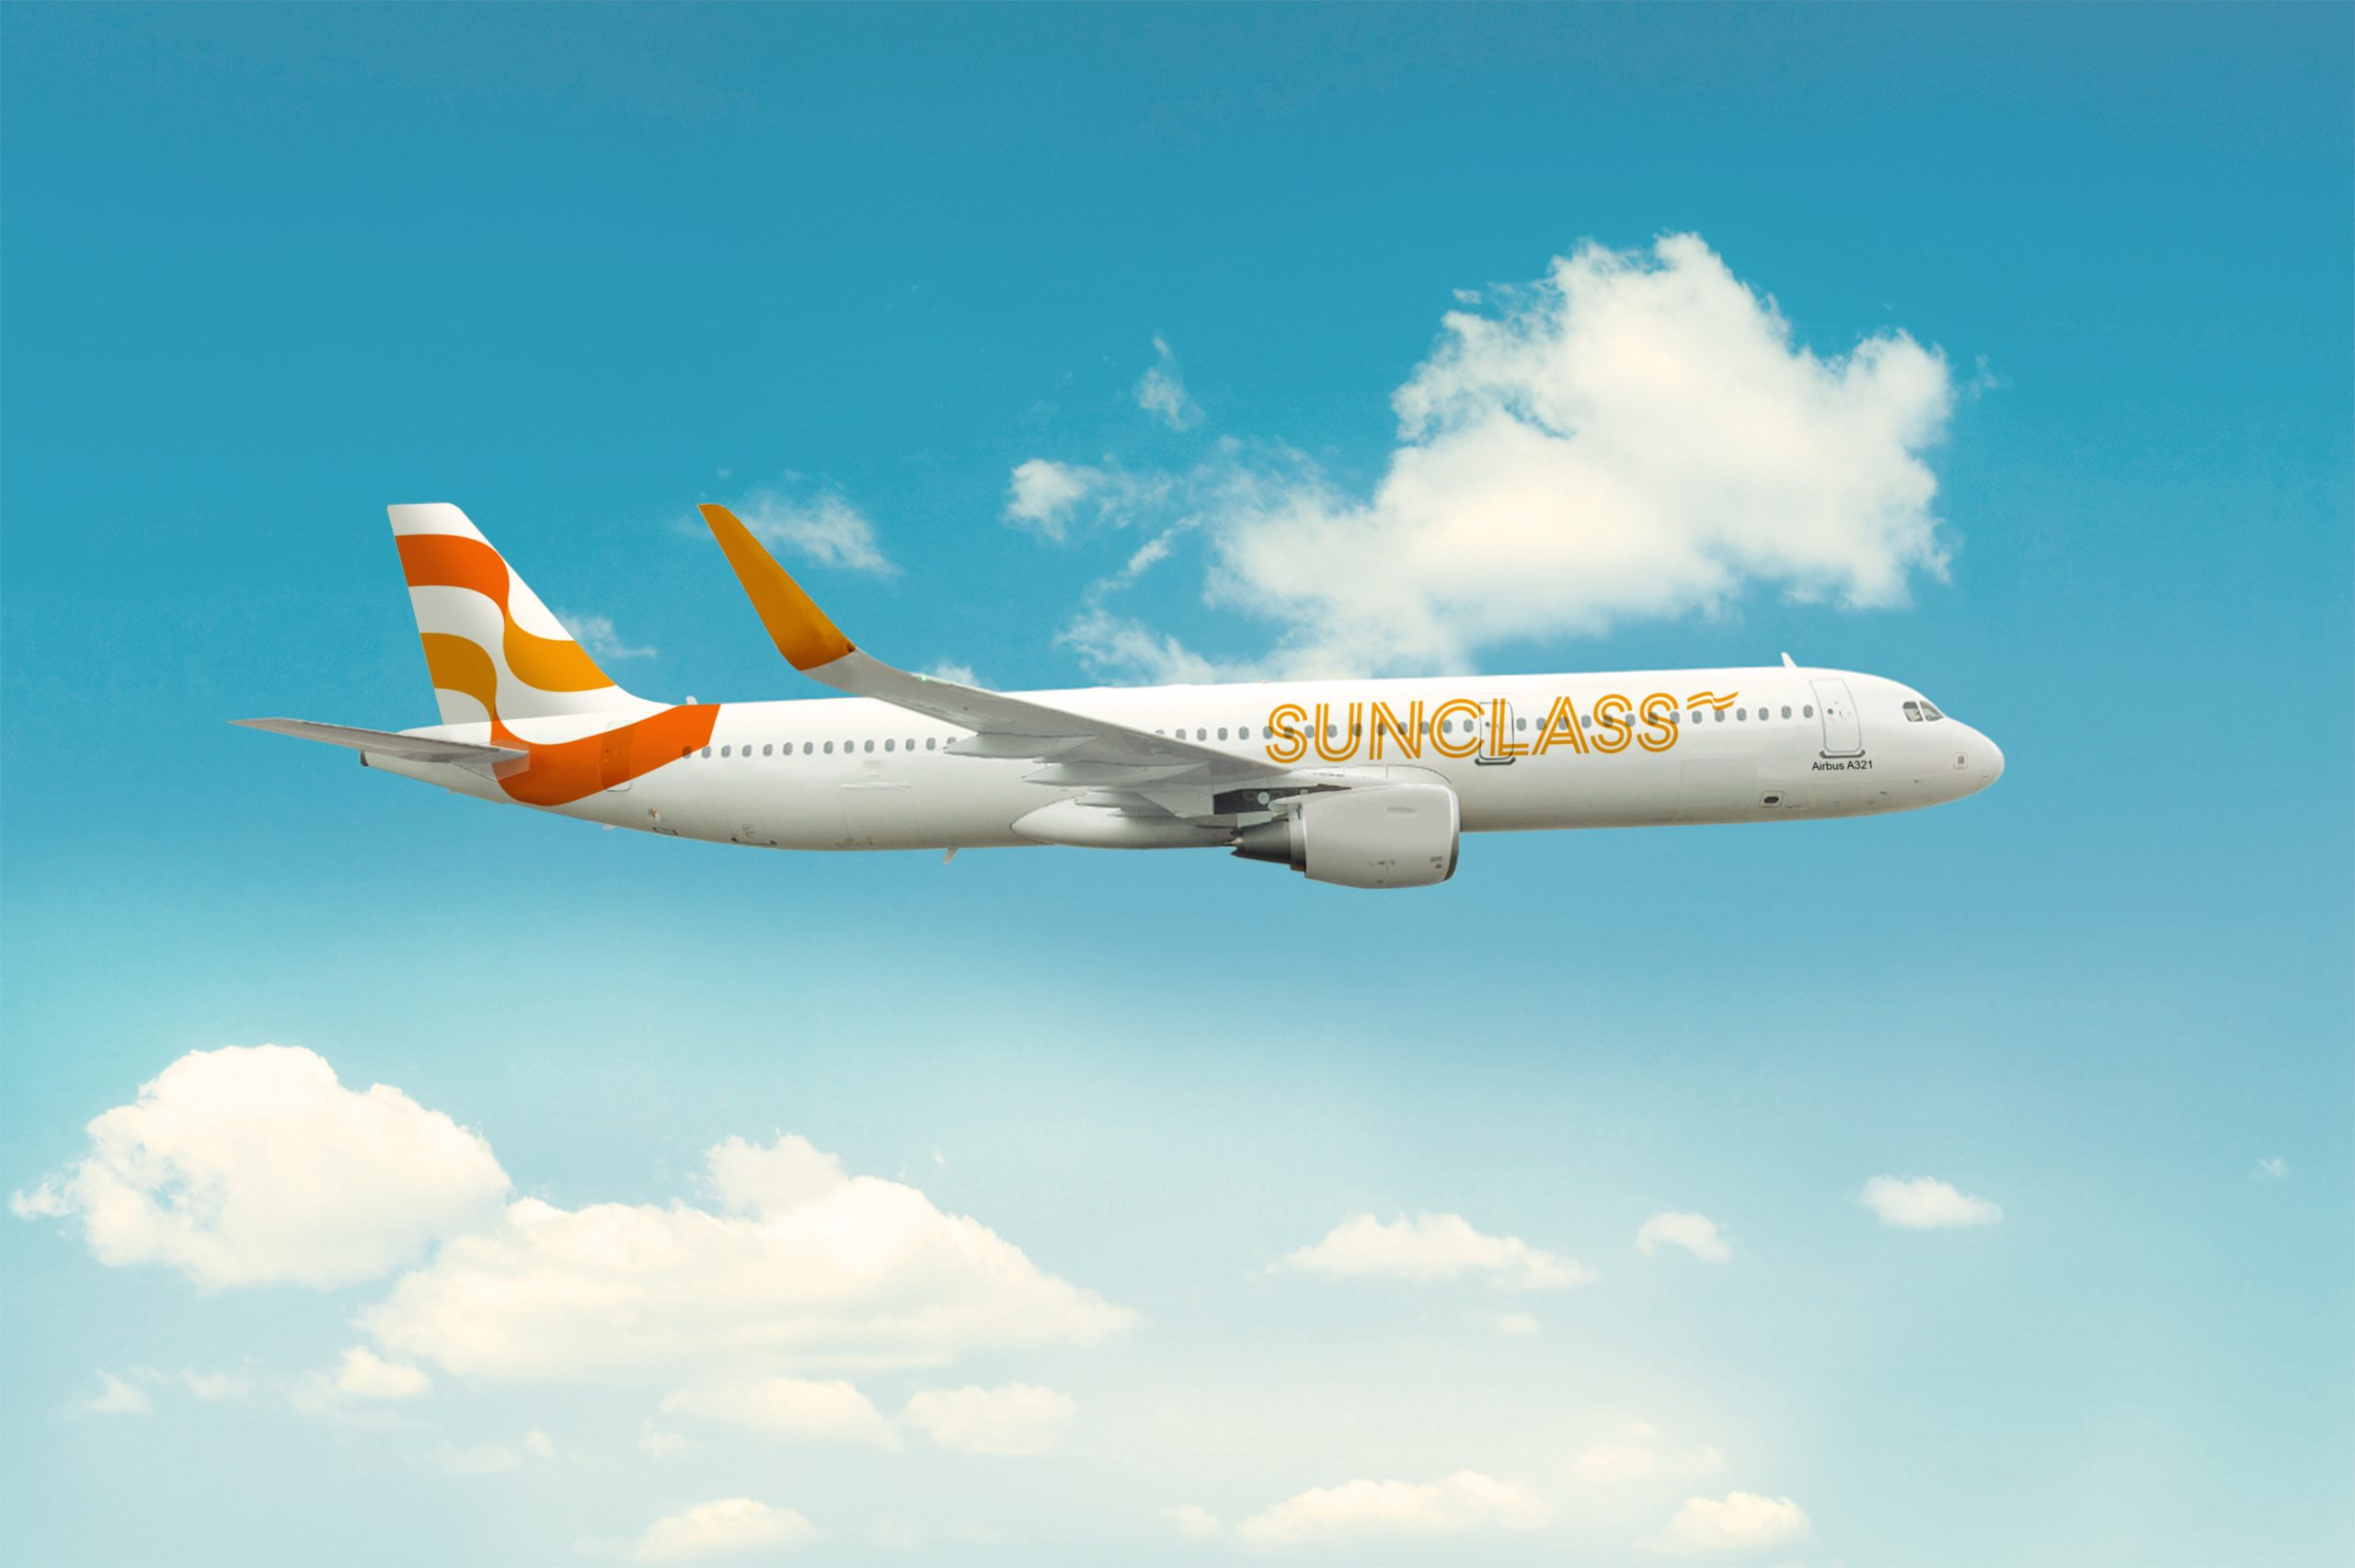 Airbus A321-200 fra Sunclass Airlines i den nye bemaling. (Foto: Sunclass)